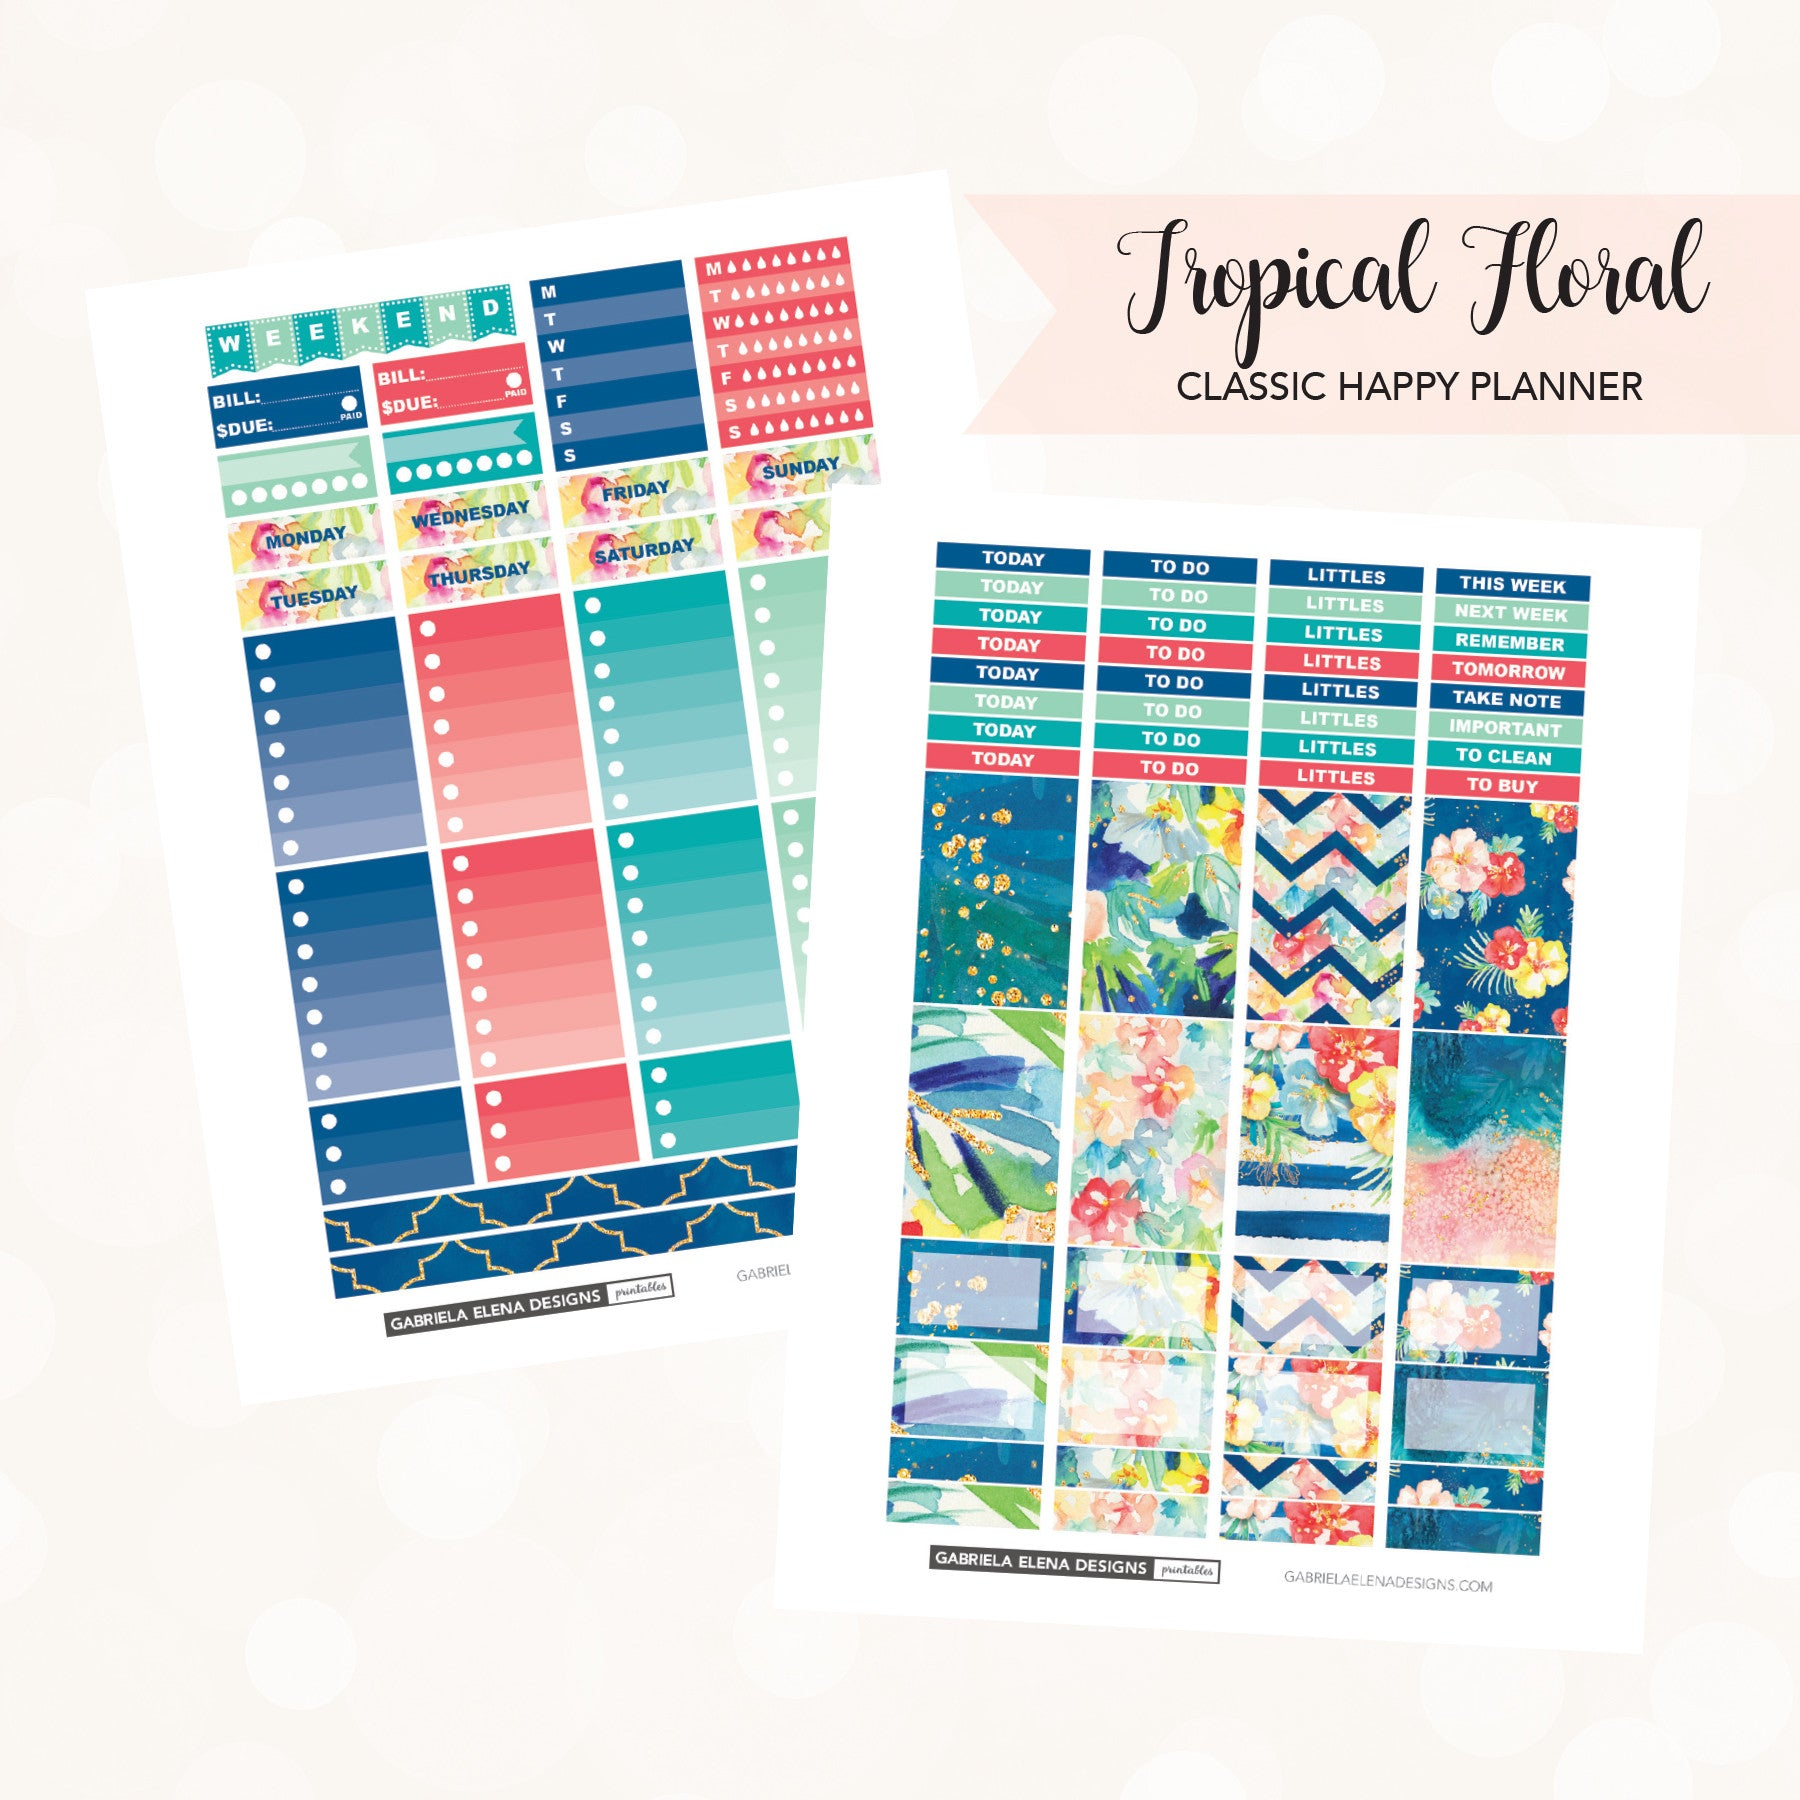 22e593c12f37d CLASSIC HAPPY PLANNER Printable / Instant Download / Tropical Floral